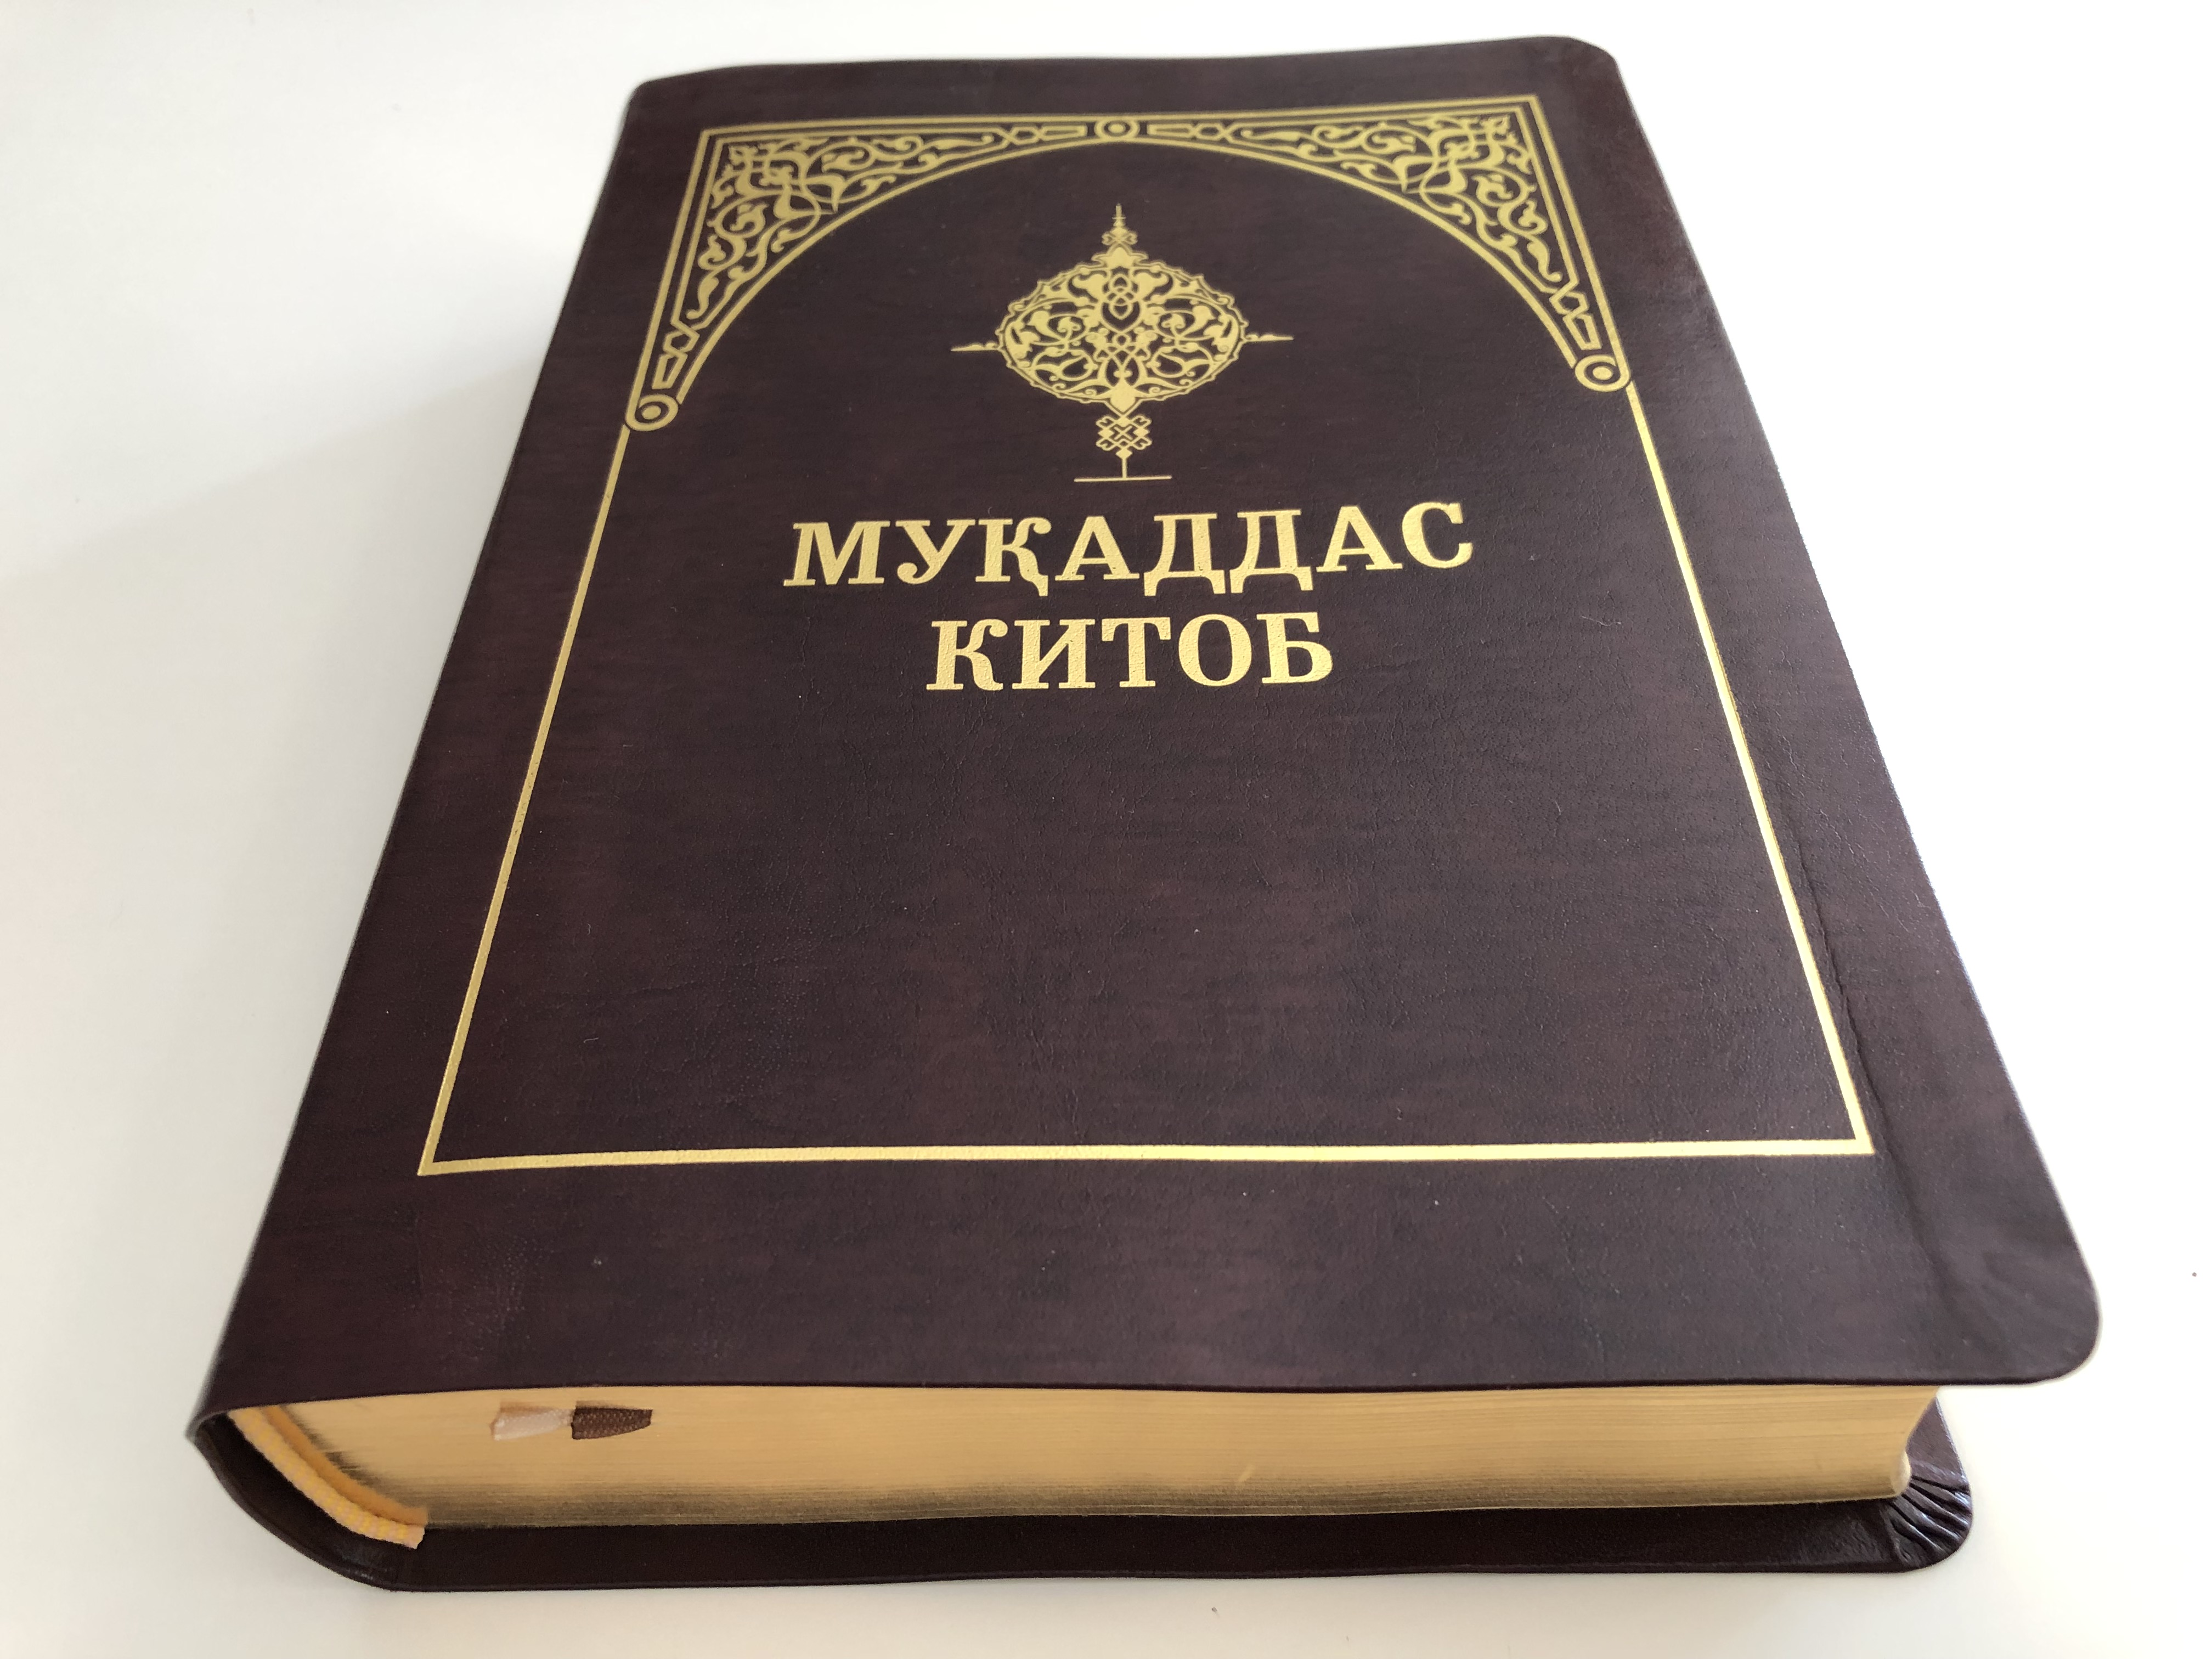 -leather-bound-uzbek-holy-bible-with-commentaries-and-nt-parallel-passage-tables-golden-edges-ribbon-bookmarks-o-zbekcha-cyrillic-script-brown-leather-bound-2018-2-.jpg